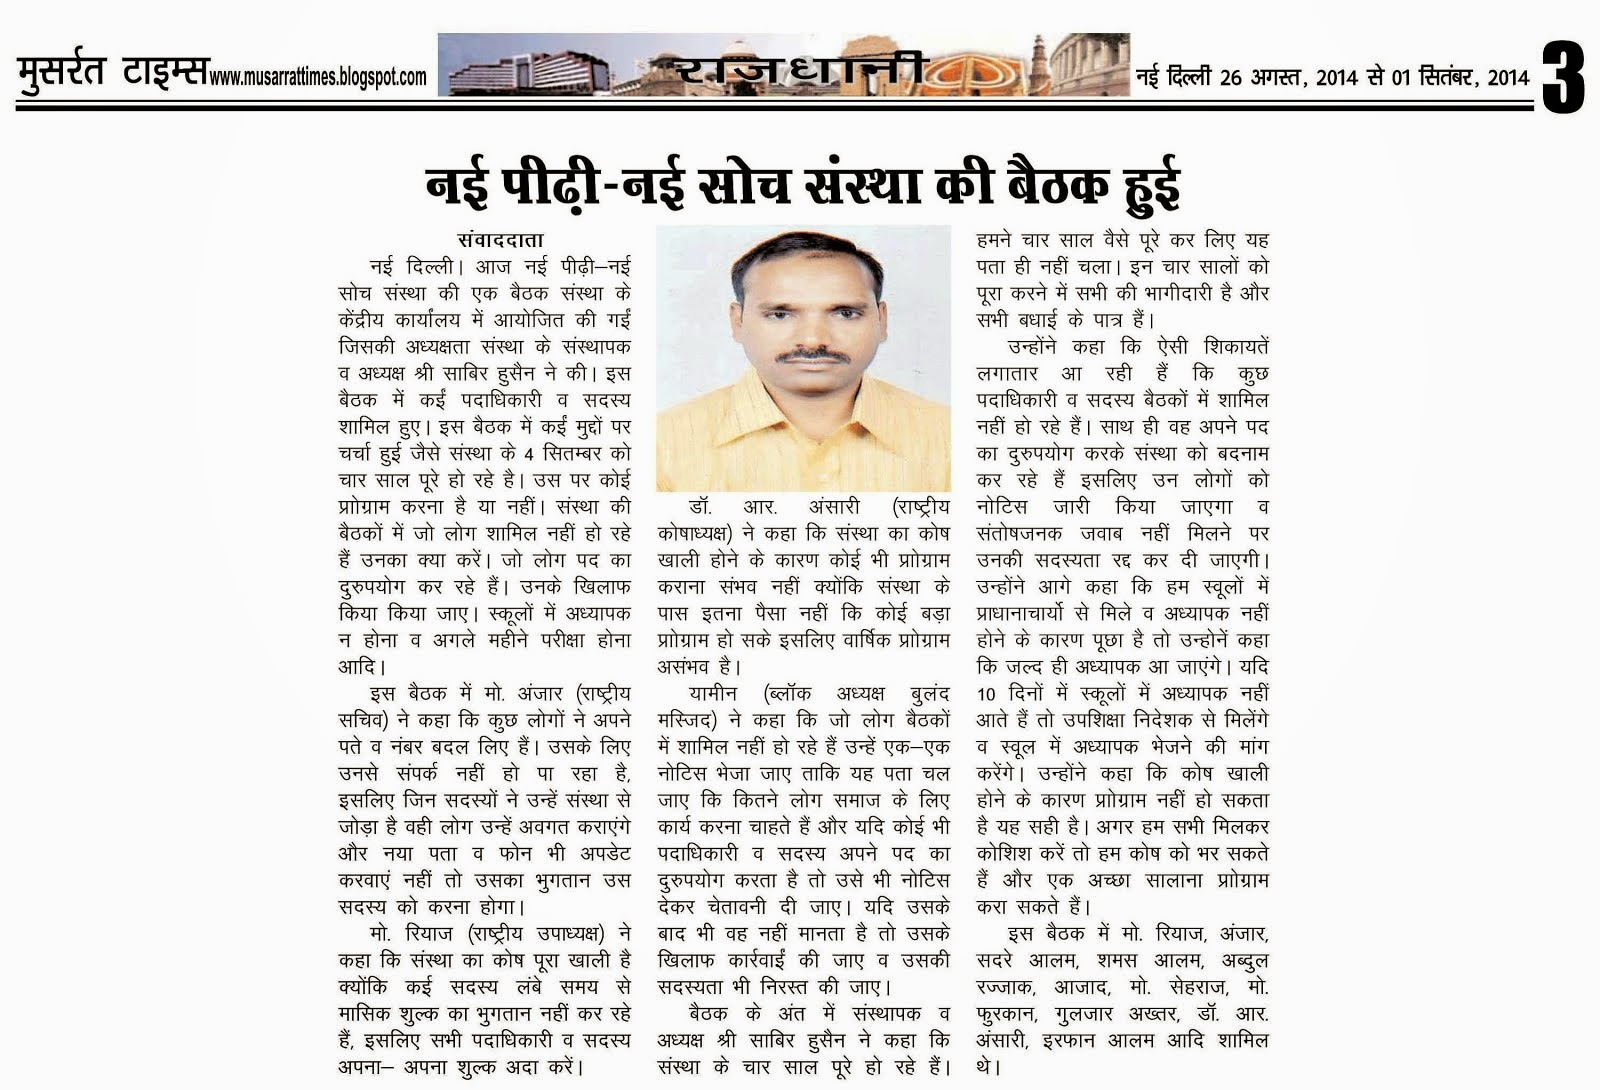 MUSARRAT TIMES 26-8-2014 TO 02-09-2014 PAGE-3